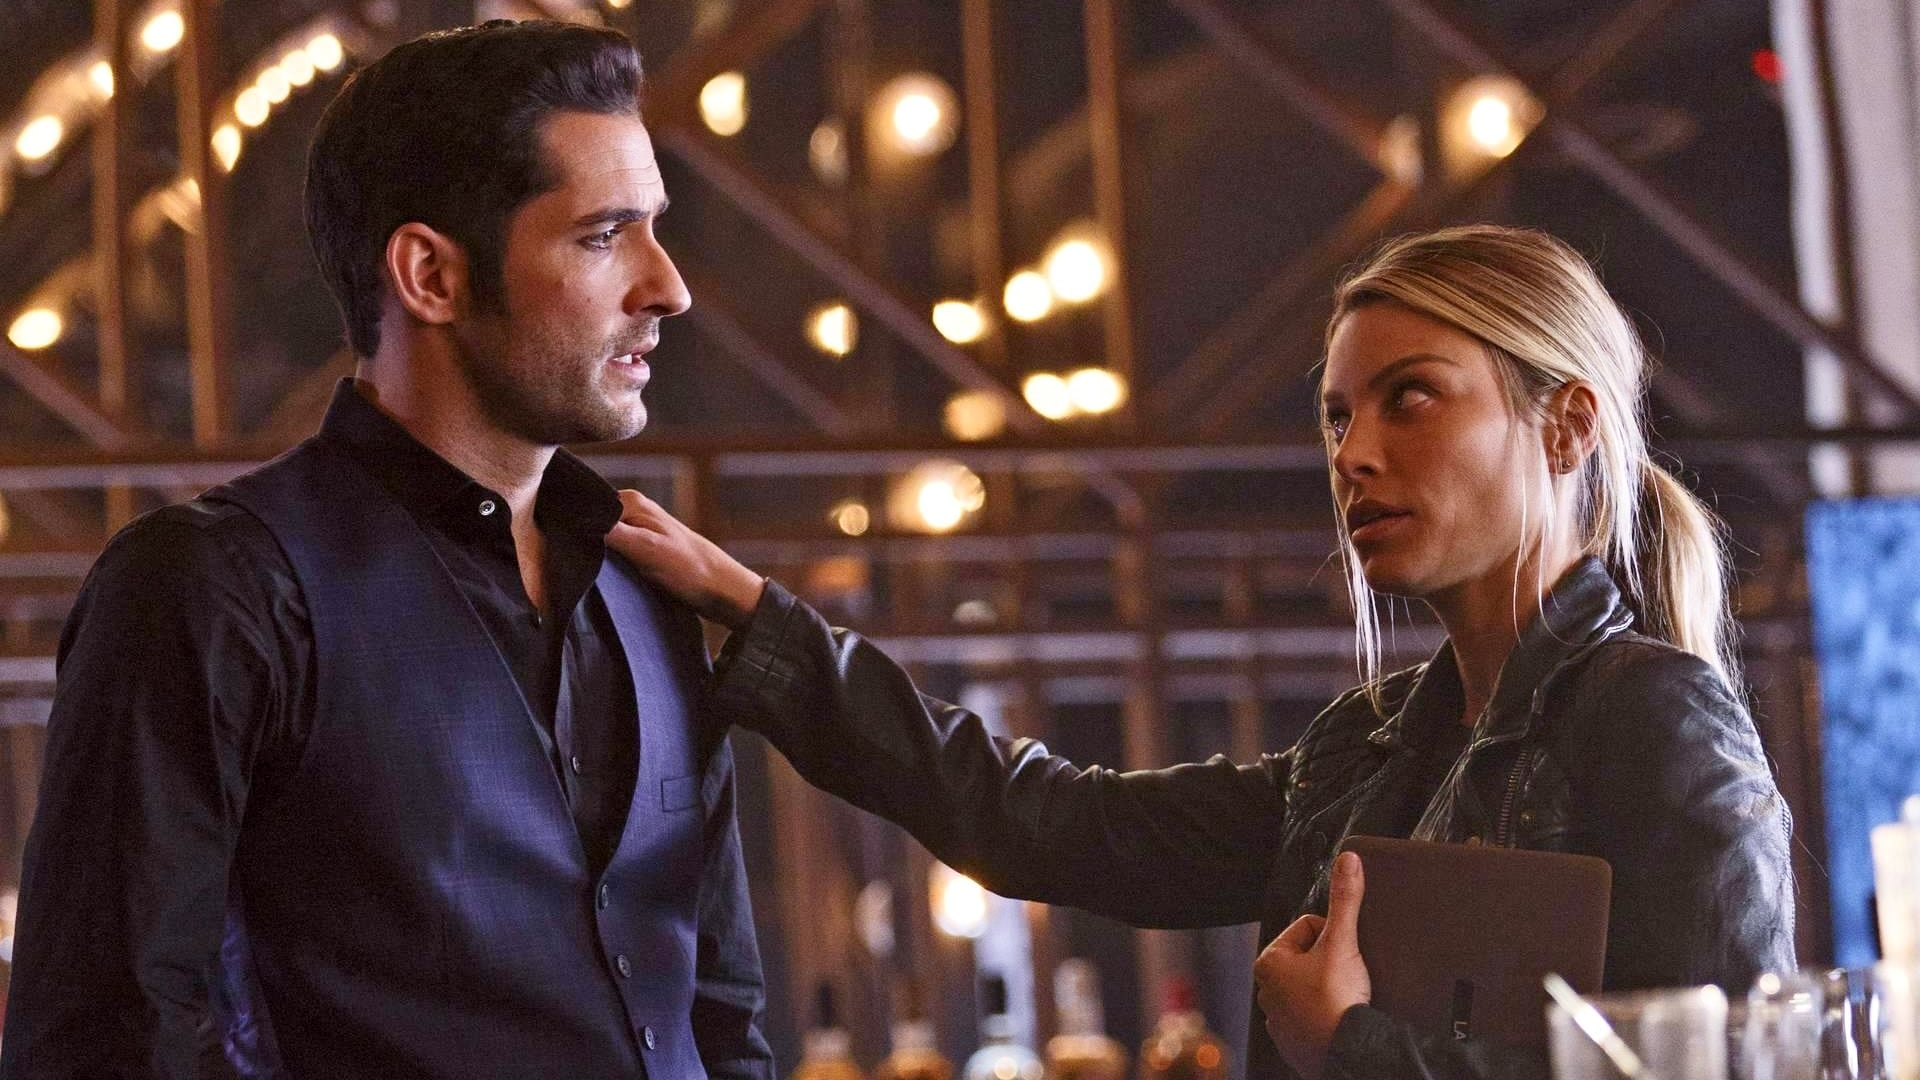 Lucifer - Season 2 Episode 9 : Homewrecker